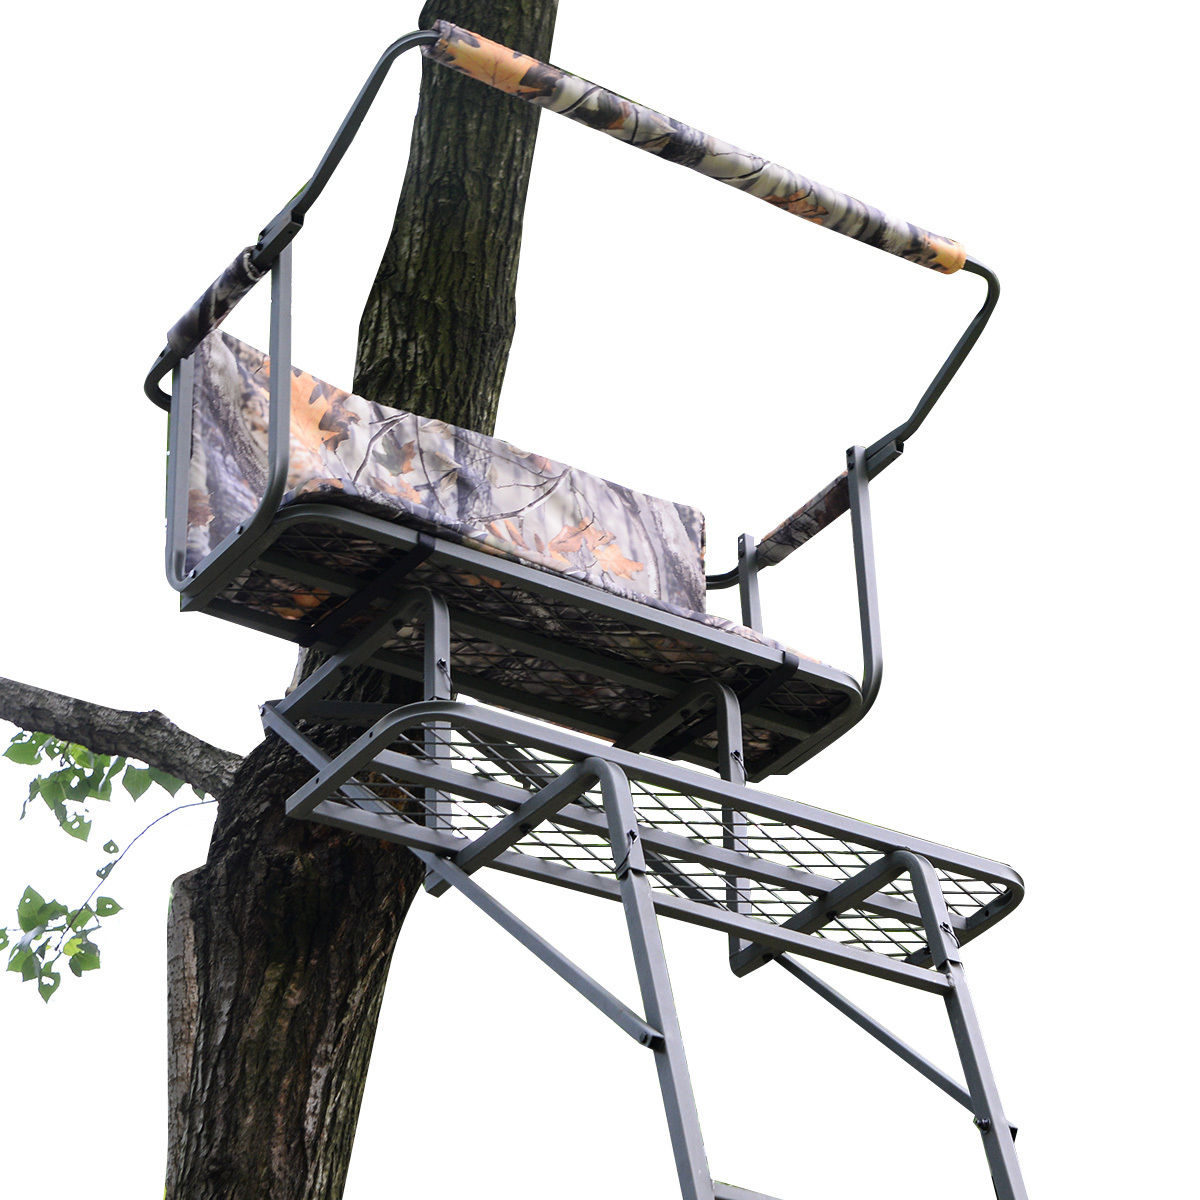 16' Two Man Hunting Ladder Stand Tree Stand Harness Seat Cushion thumbnail